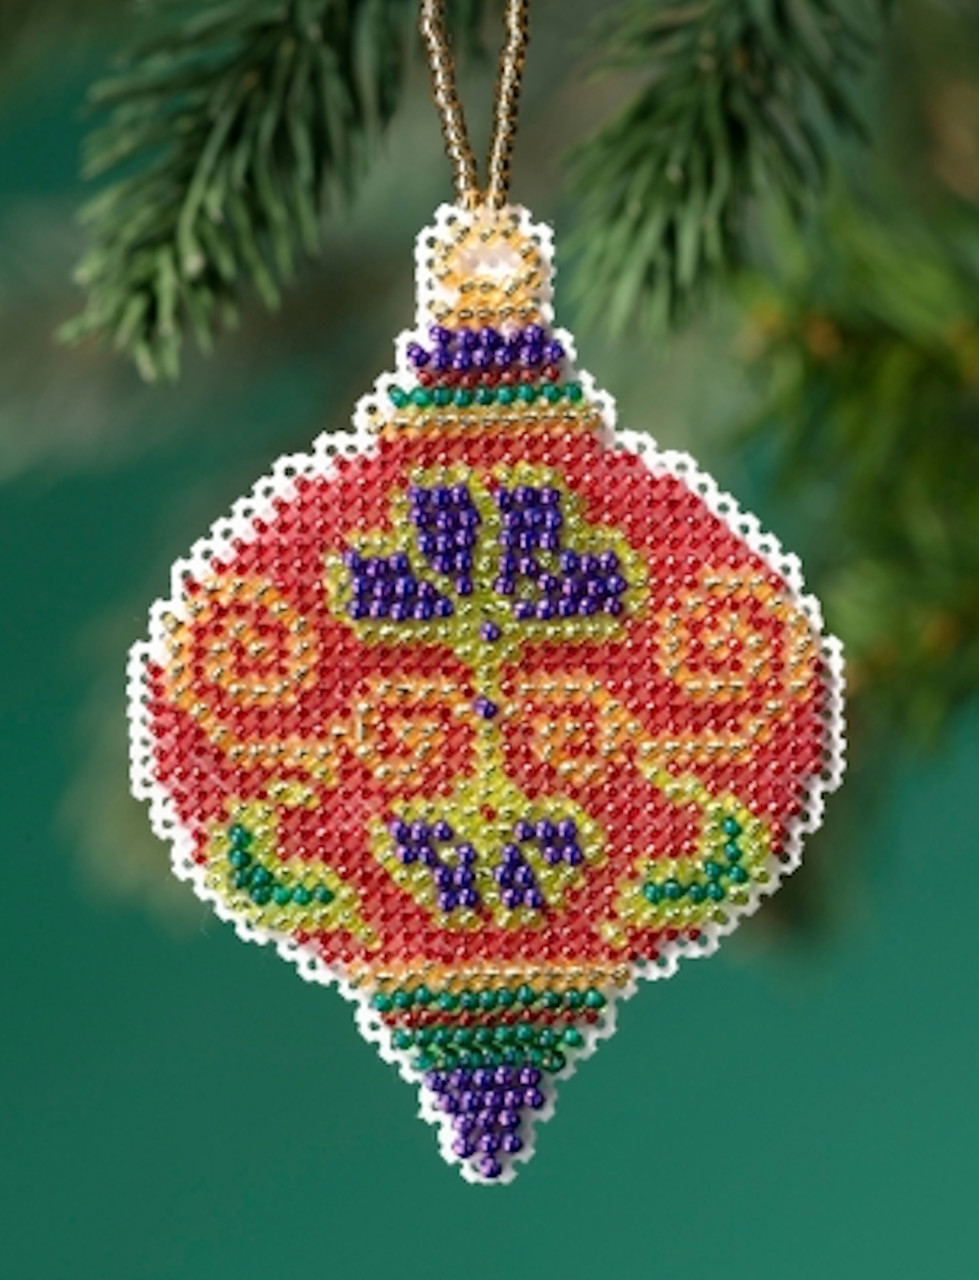 Mill Hill 2019 Beaded Holiday Ornament - Crimson Cloisonne